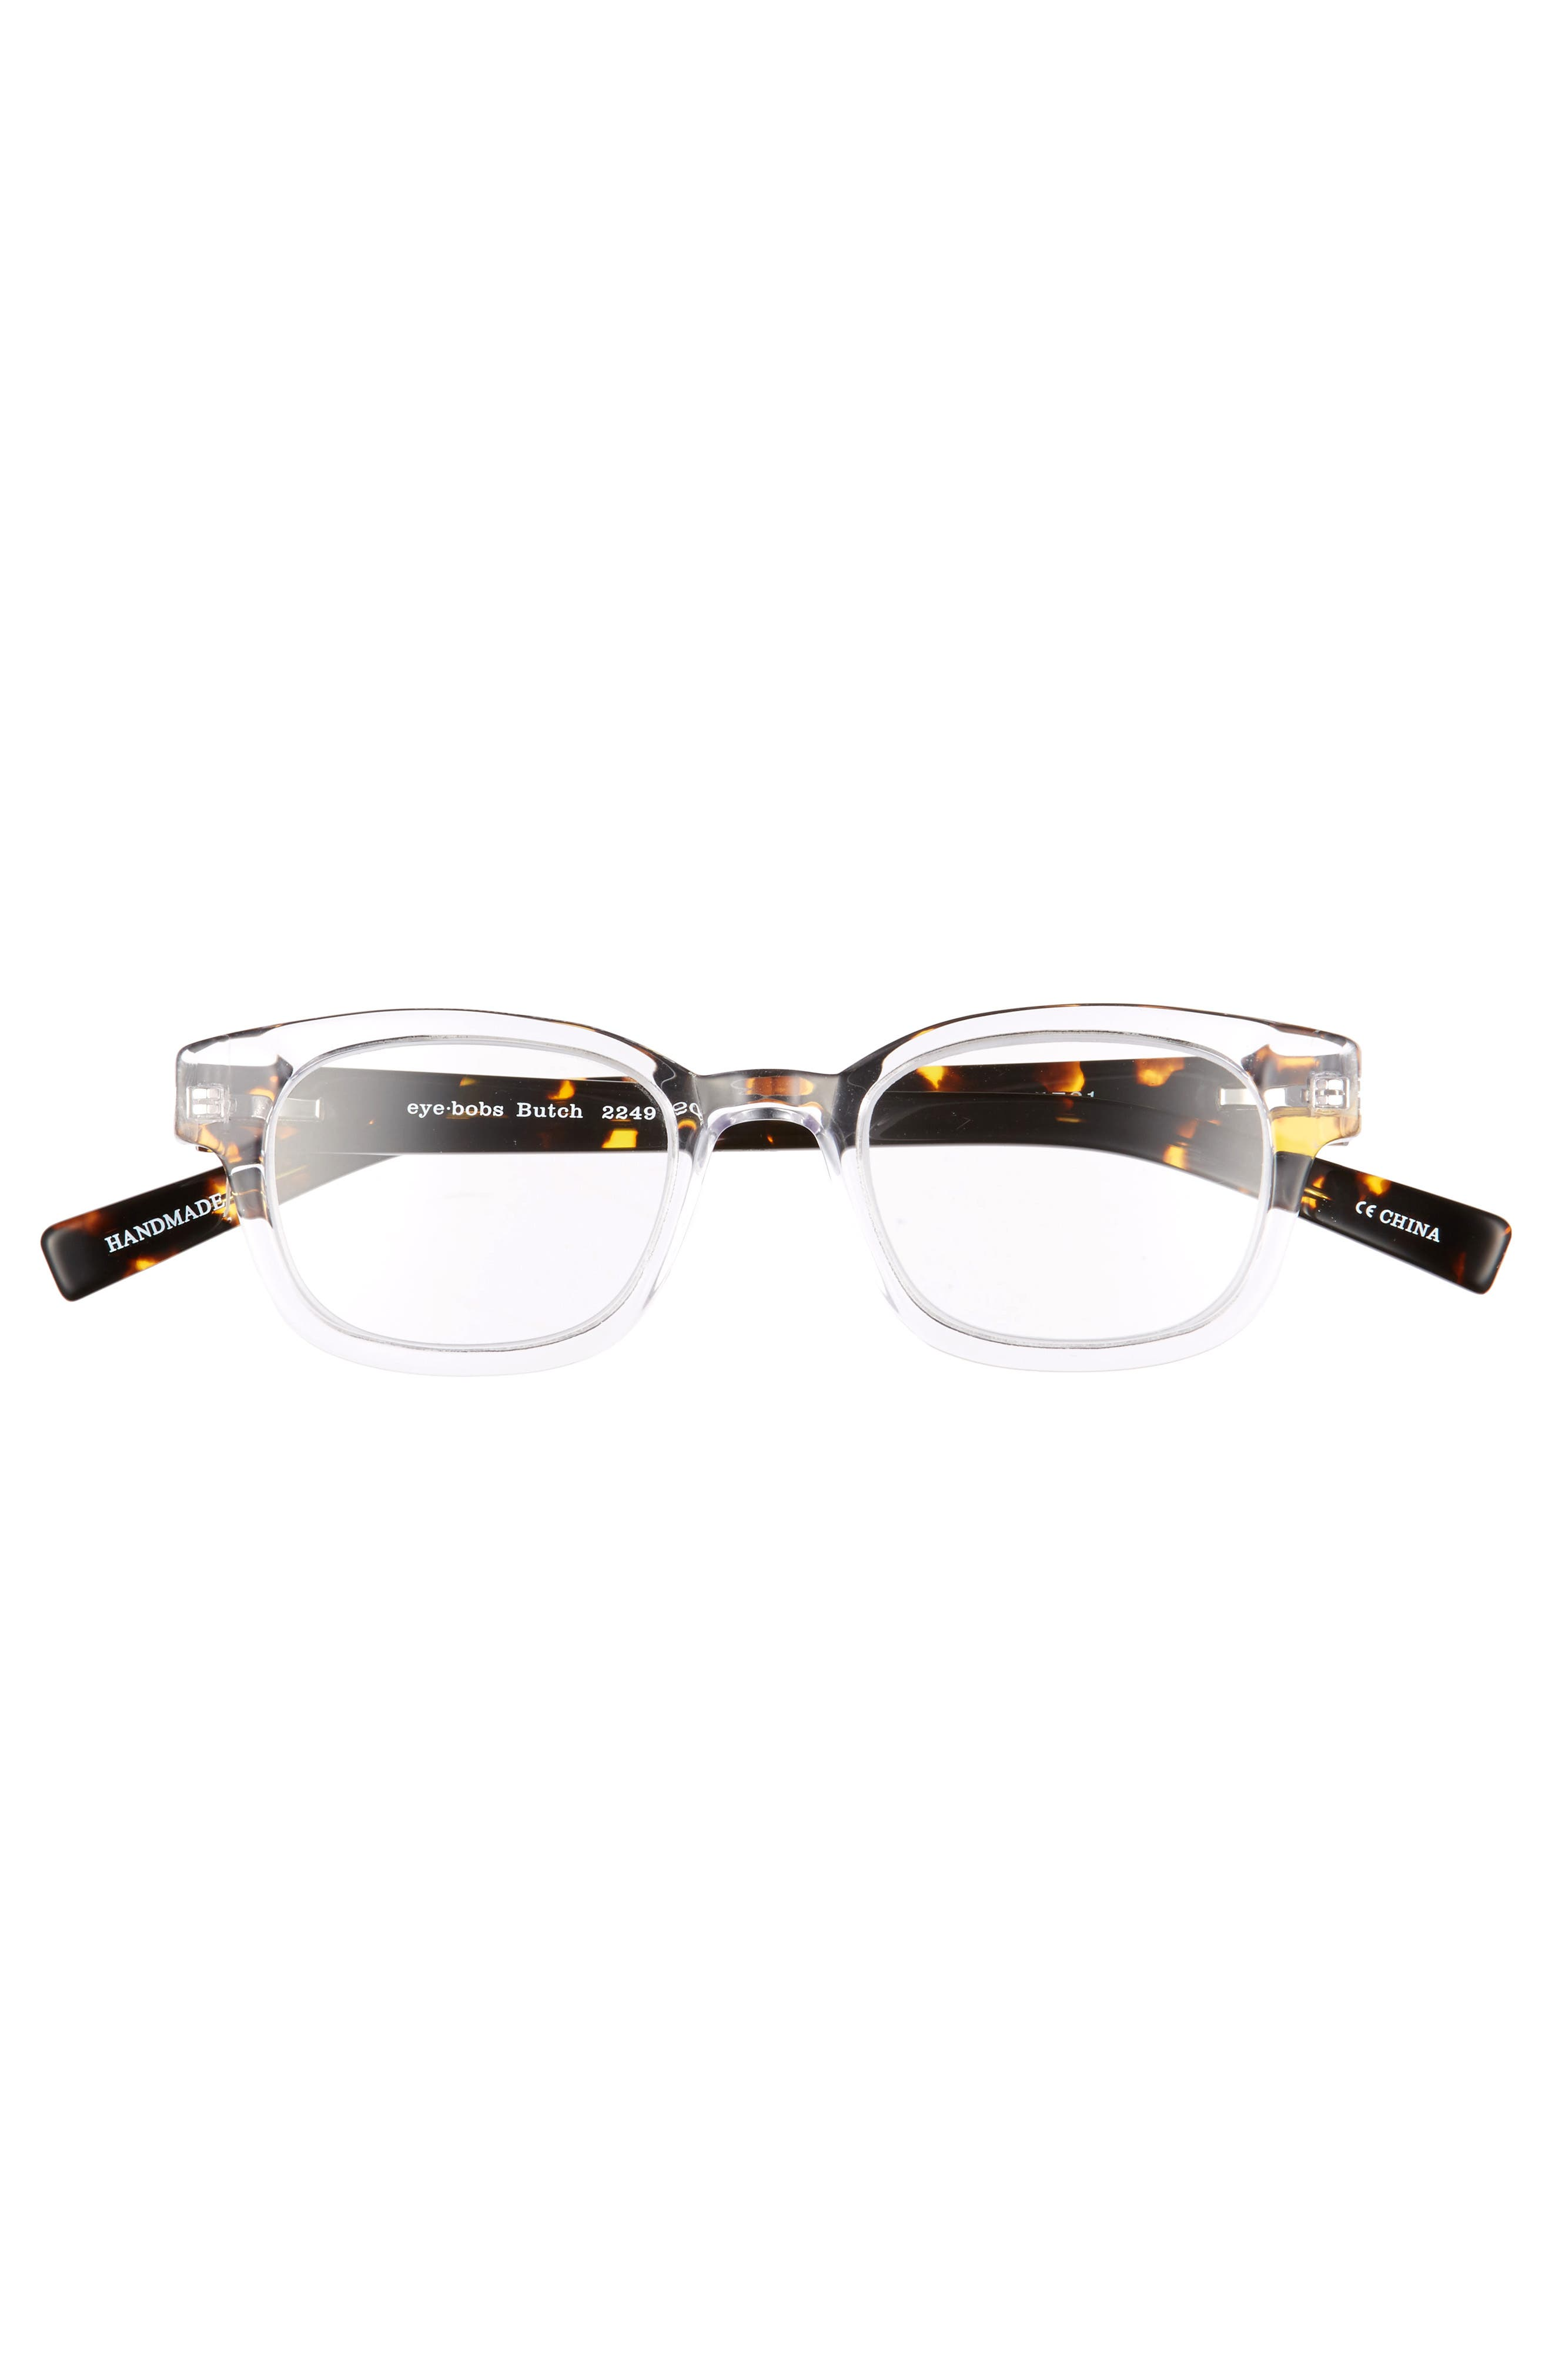 Butch 45mm Reading Glasses,                             Alternate thumbnail 2, color,                             CRYSTAL WITH TORTOISE